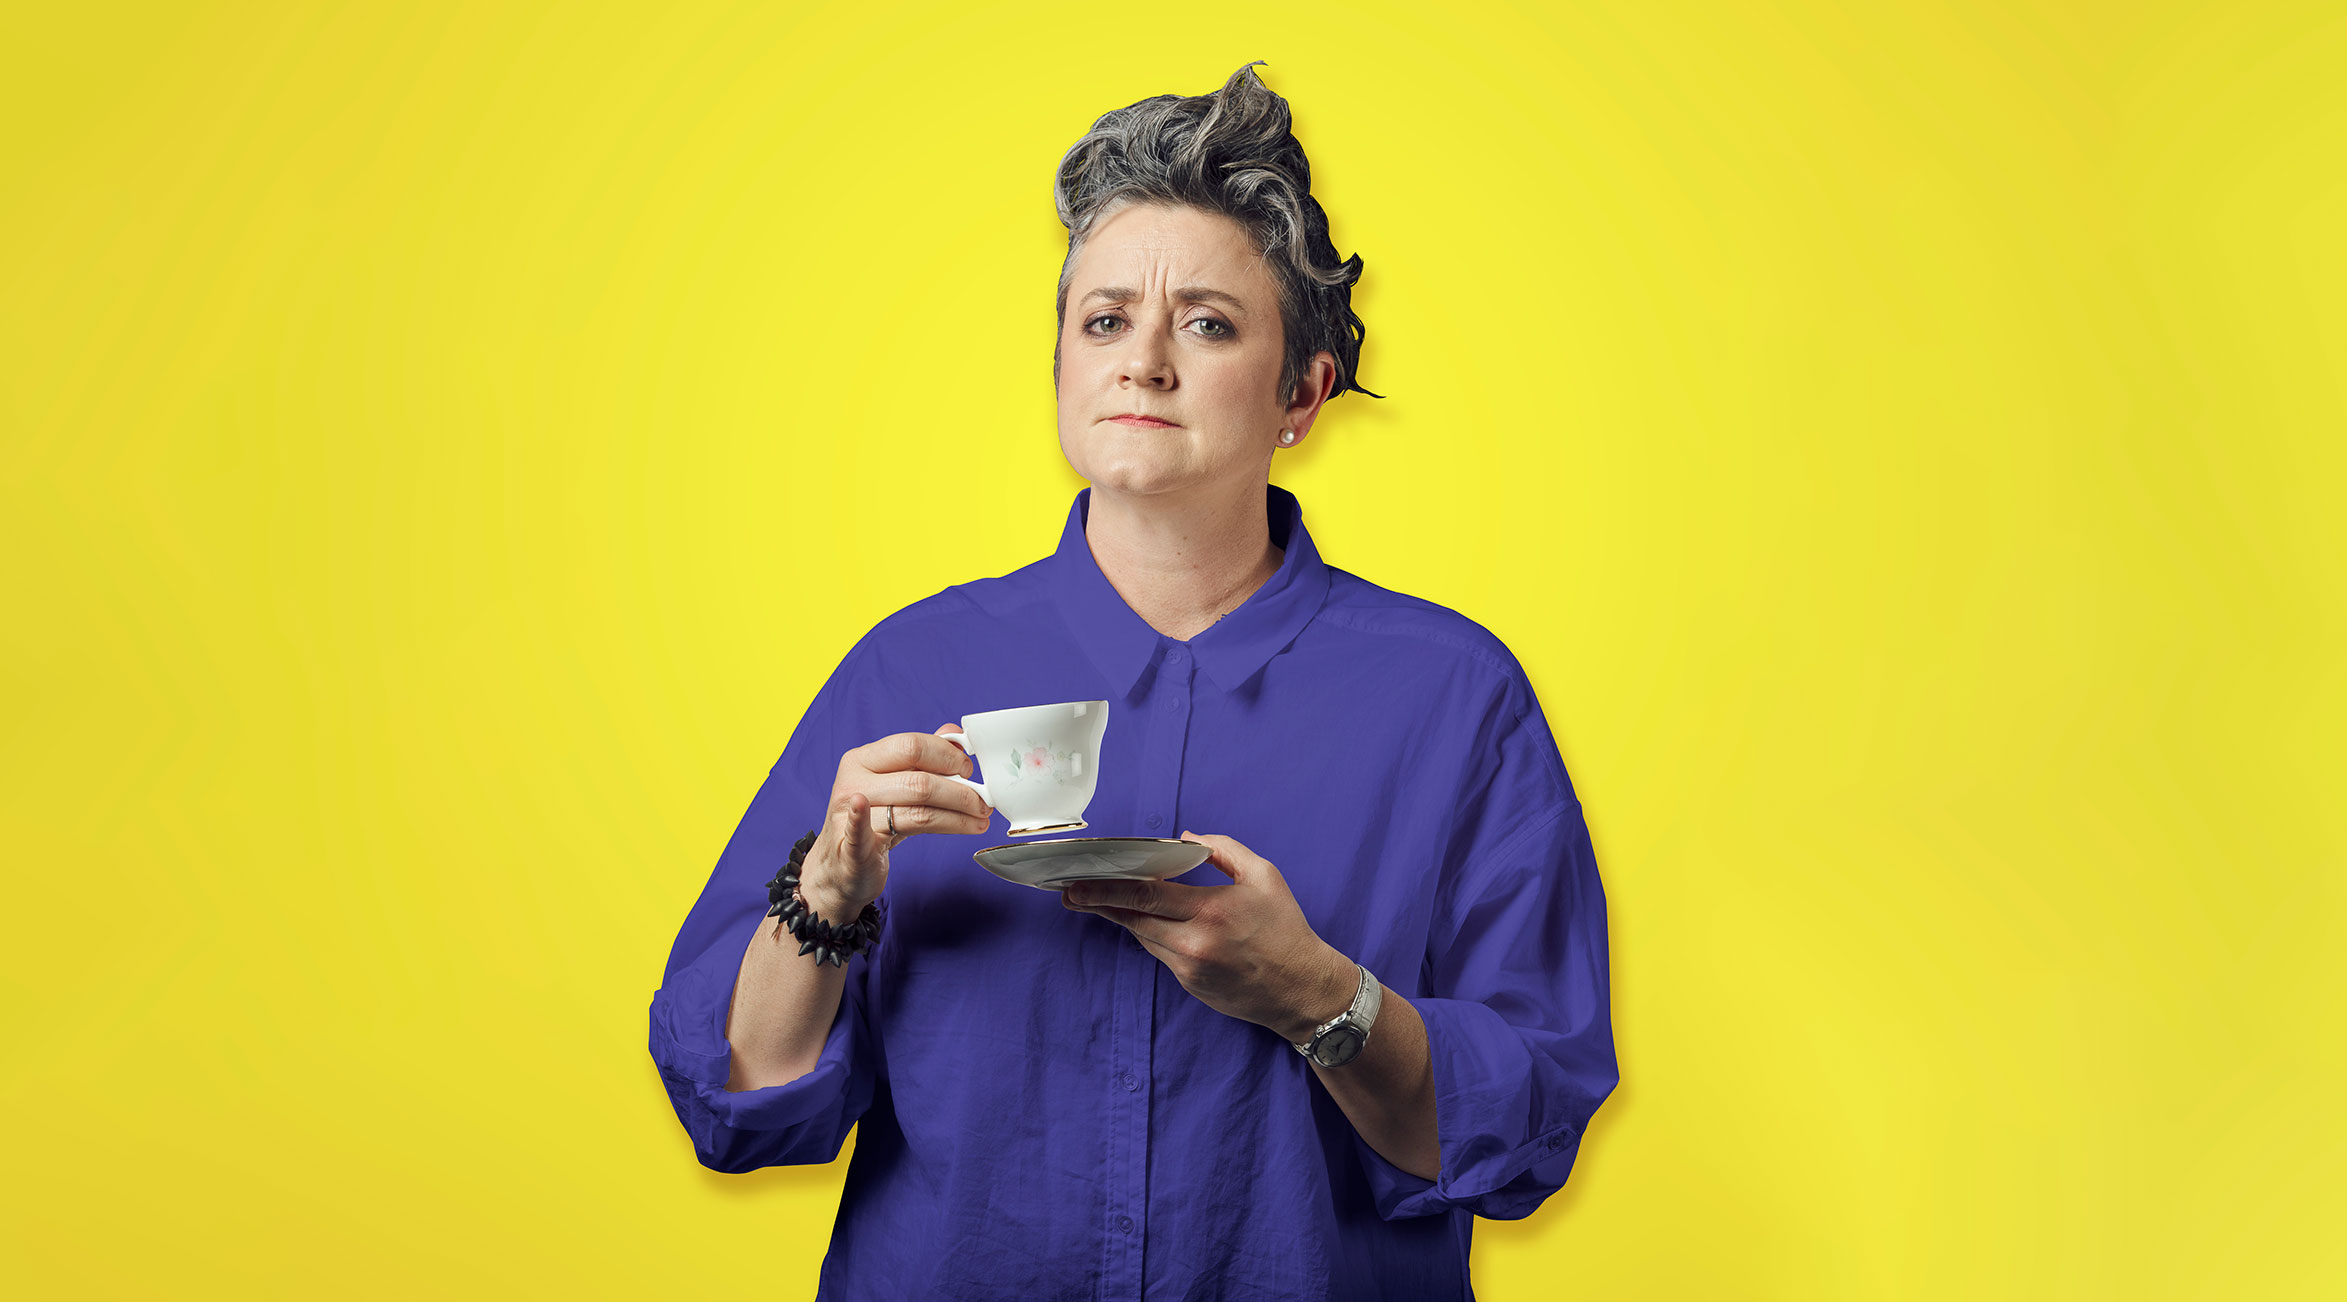 Game Sets, Match: Frankie McNair chats to Chris Ryan about her upcoming Canberra Comedy Fest show 'I Thought It Would Be Nice'